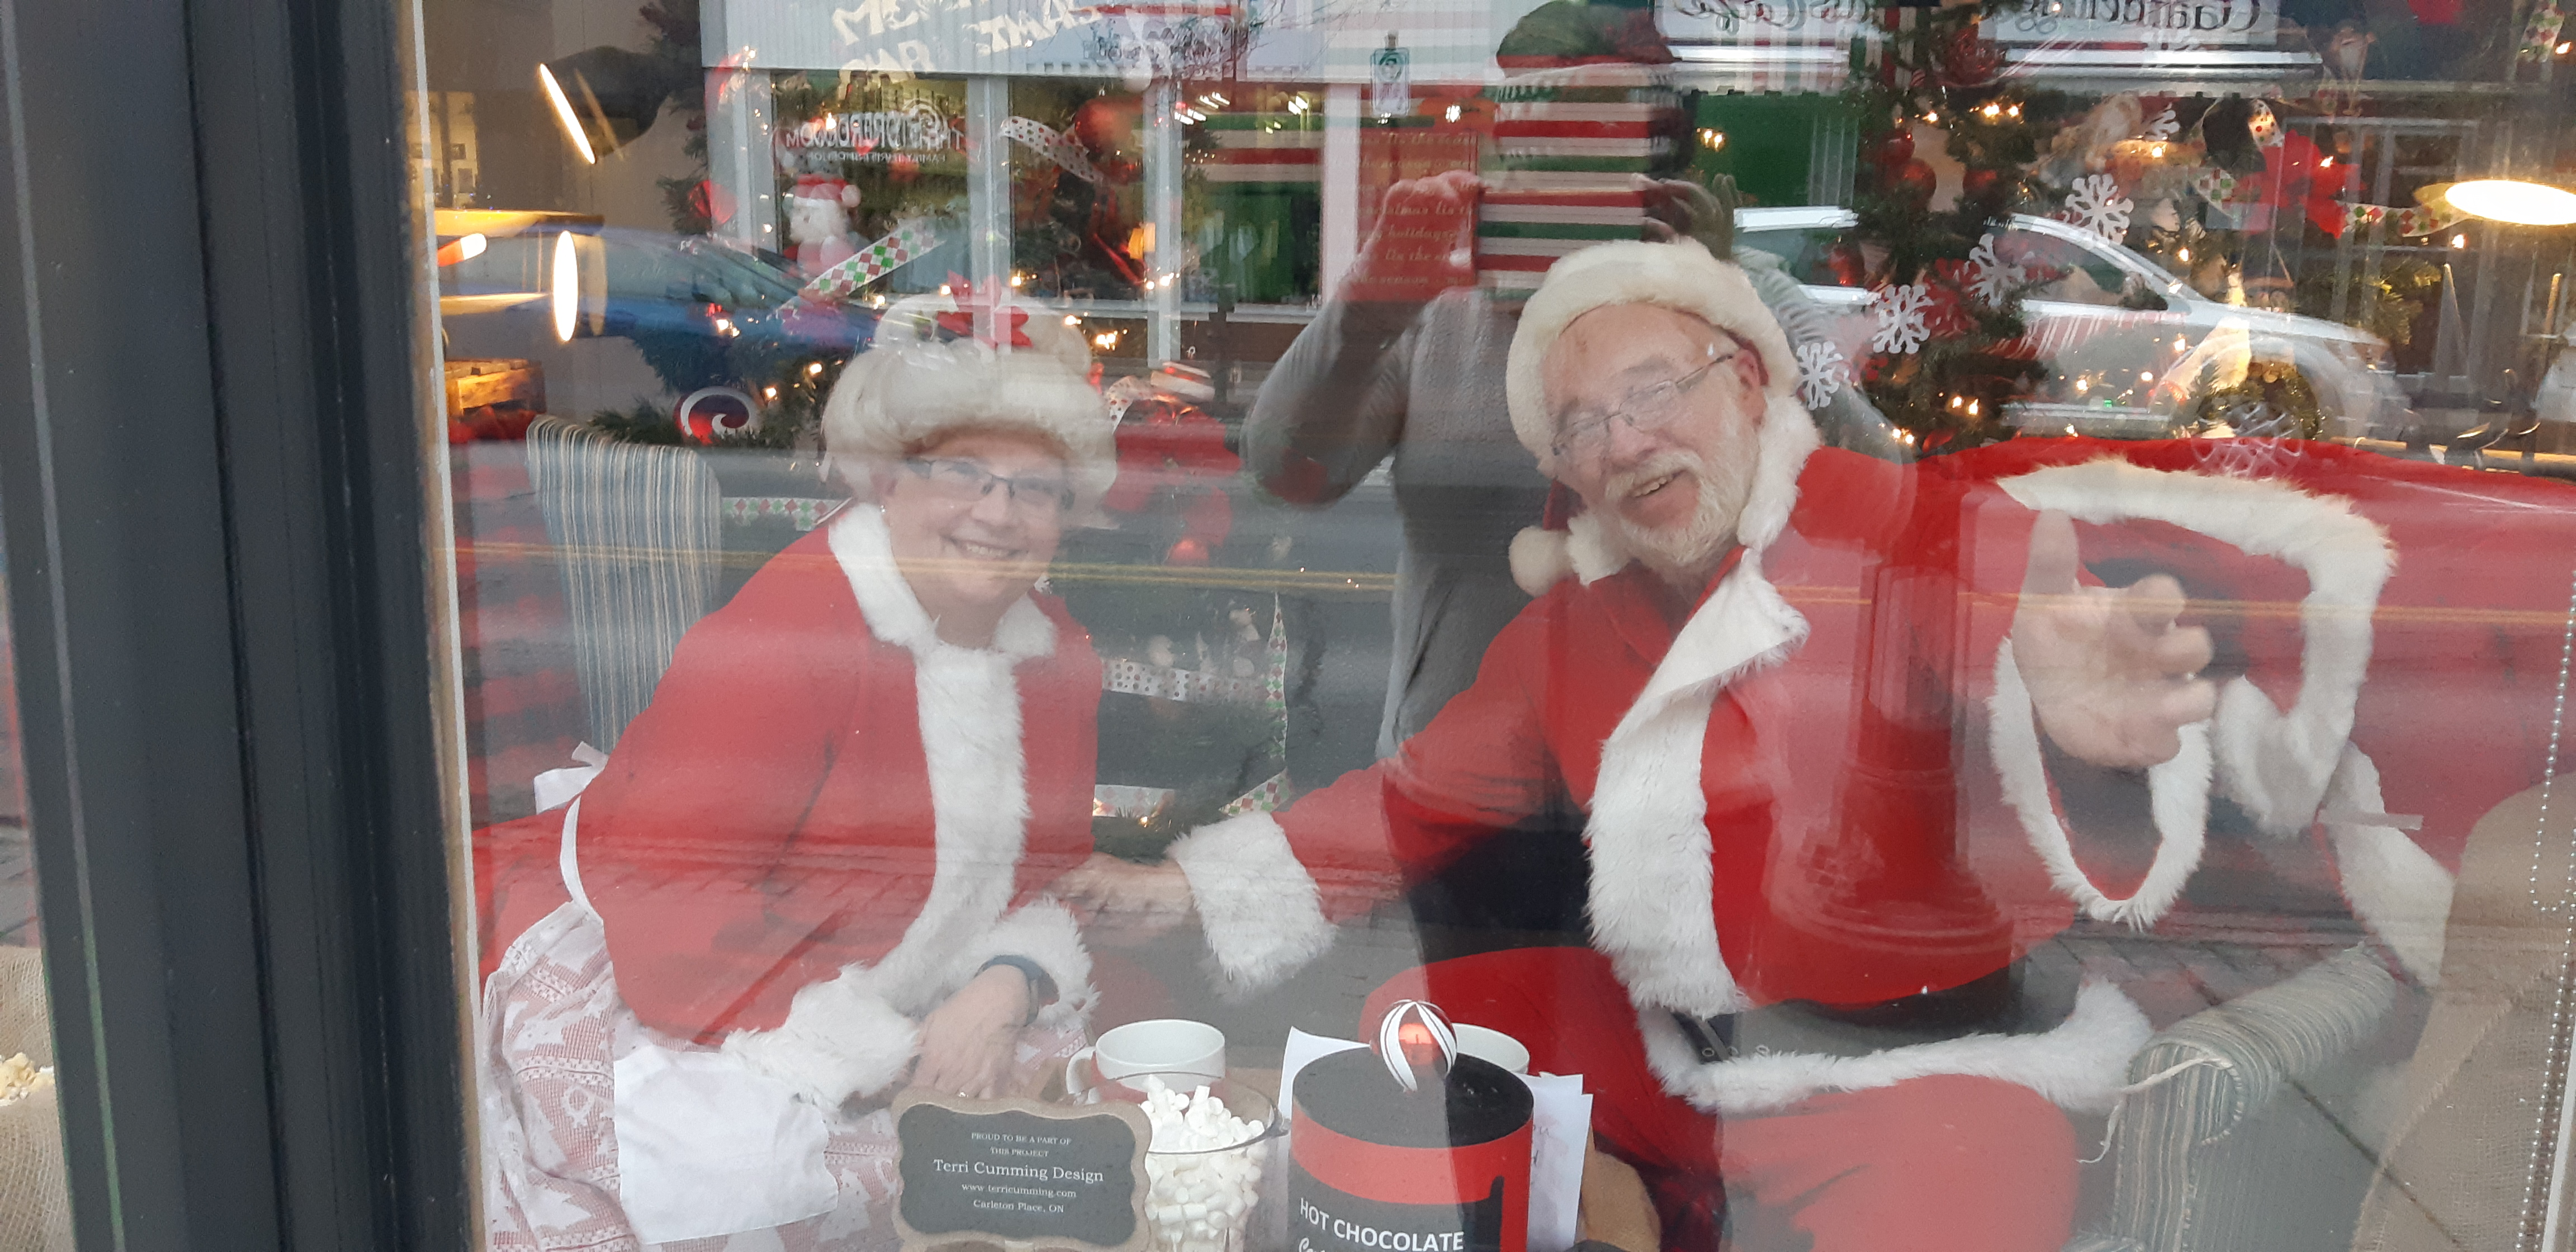 Drop by and say 'hi' to Santa and Mrs. Claus in Carleton Place